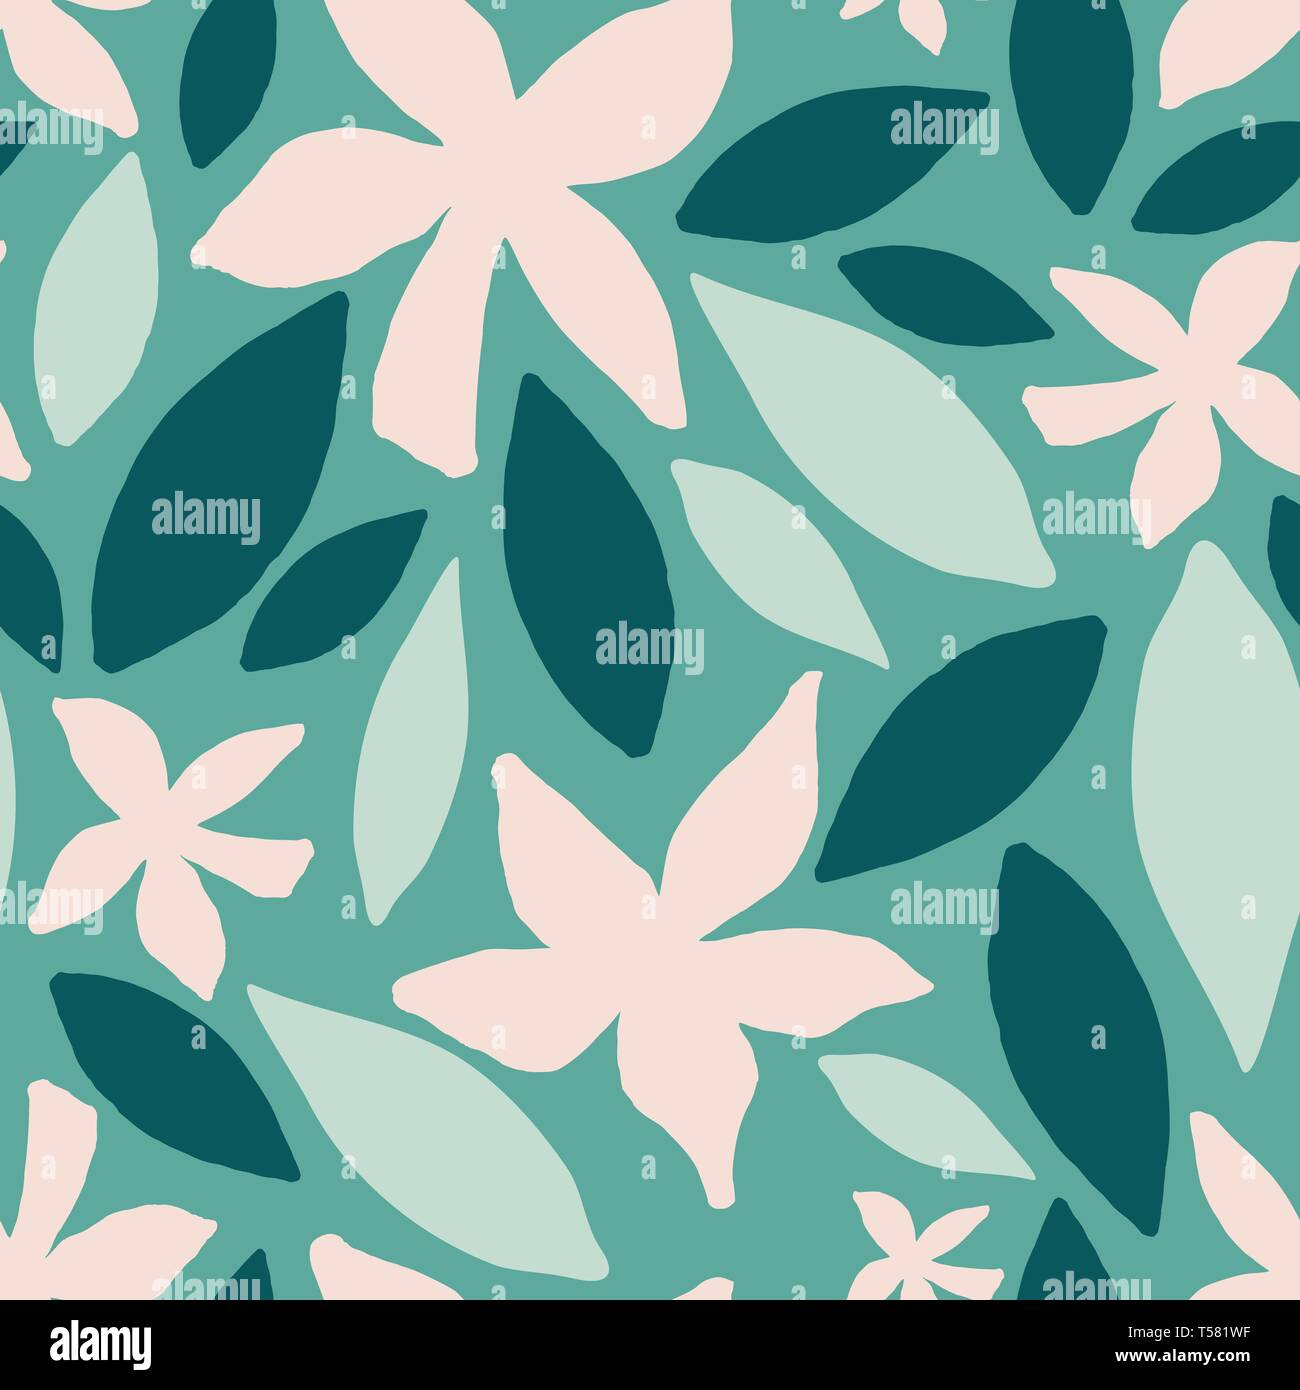 Seamless Repeating Pattern With Abstract Floral And Leaf Shapes In